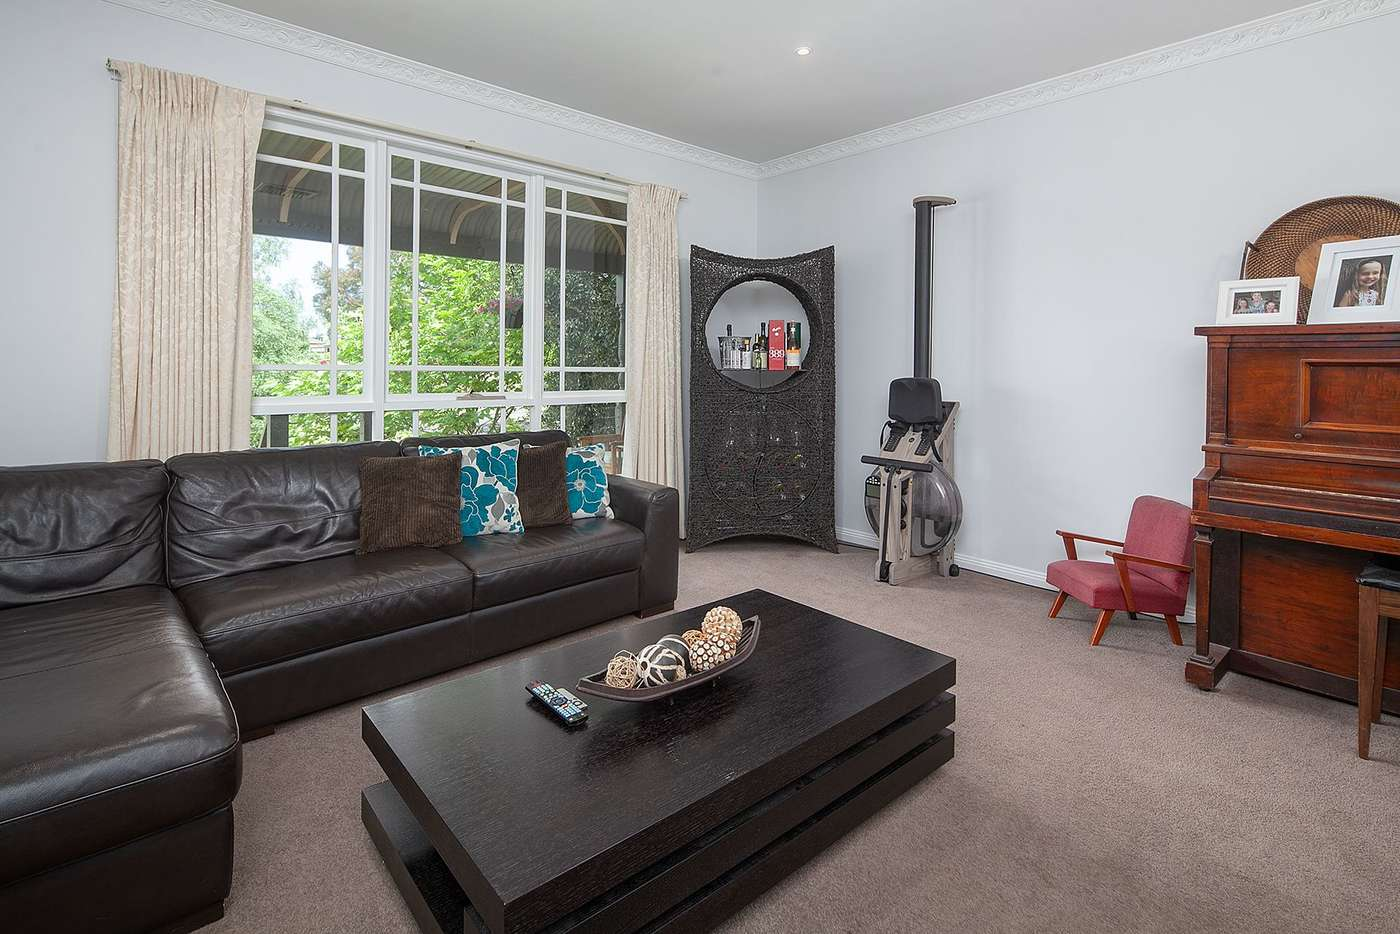 Fifth view of Homely house listing, 20 Candwindara Court, Langwarrin VIC 3910